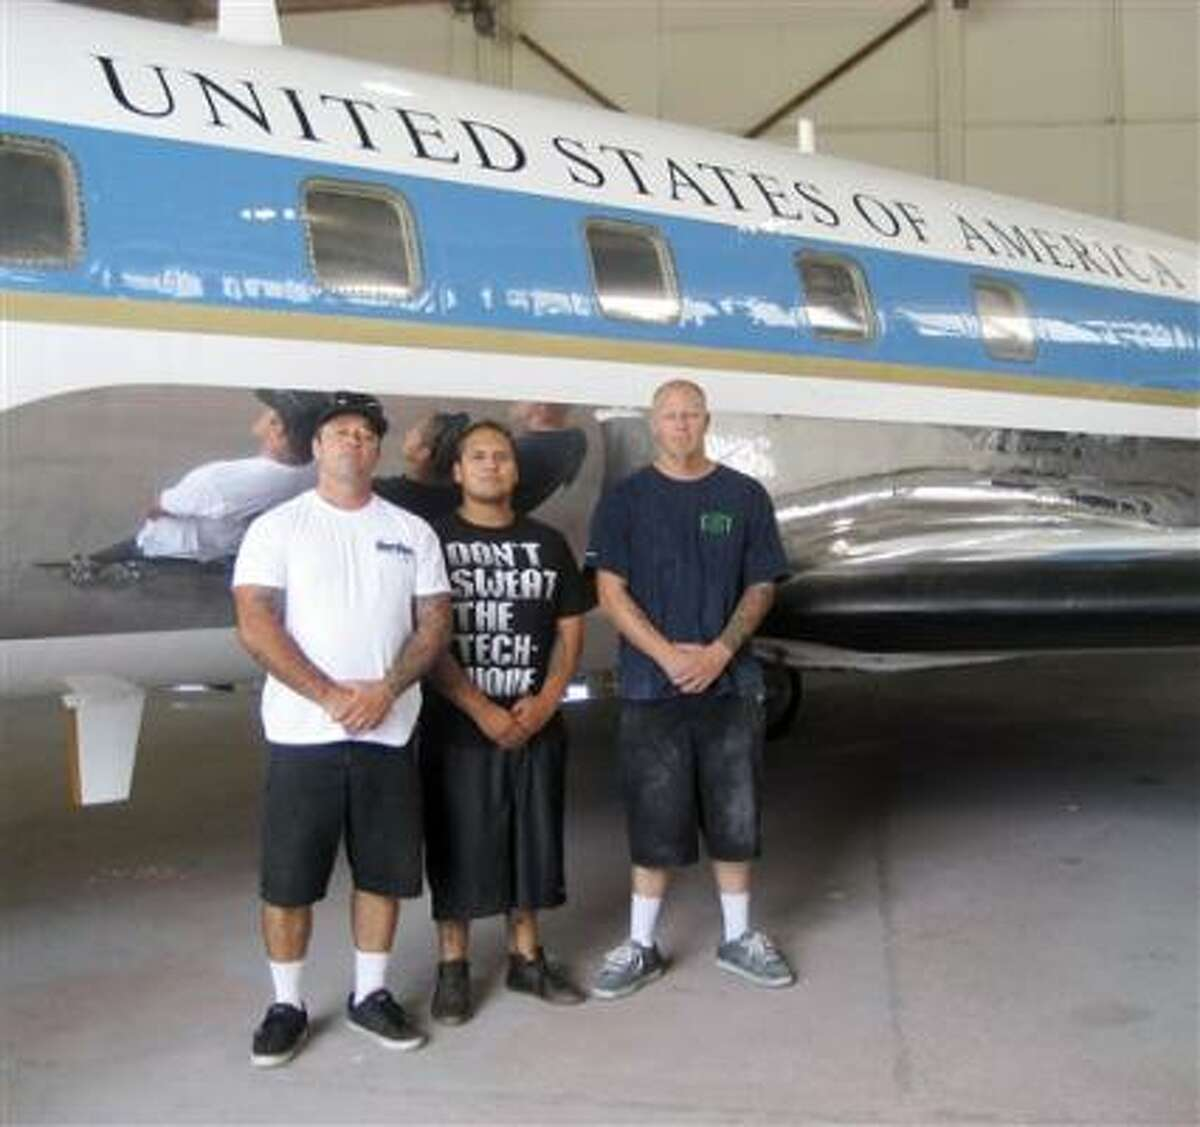 Barry Oloizia, left, Miguel Vazquez and Sean Straube are part of the crew that repainted LBJ's JetStar. The plane will be put on display at the Texas White House near Austin.